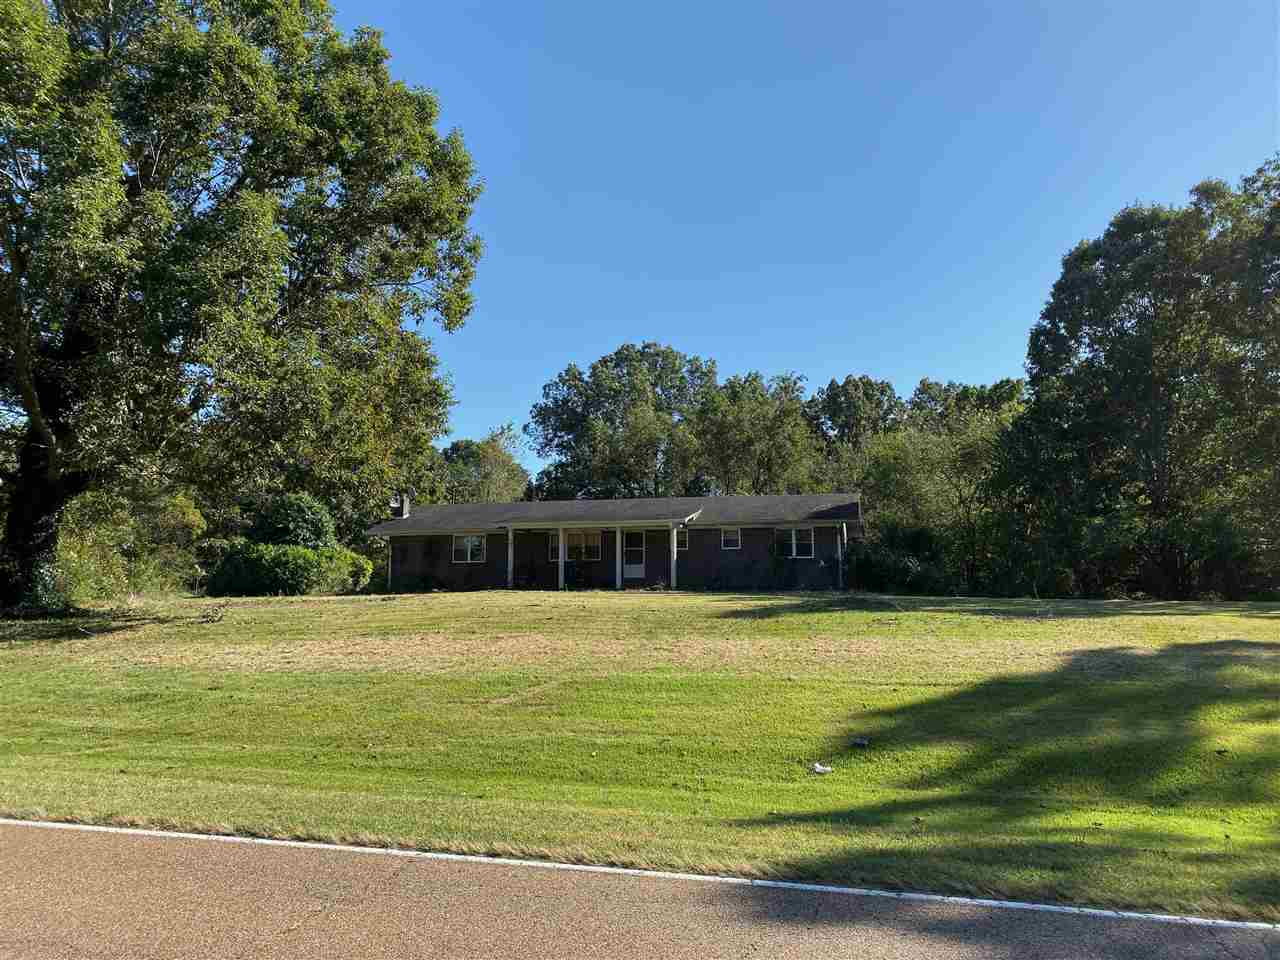 316 St Rt 420, Humboldt, Tennessee 38343, 3 Bedrooms Bedrooms, ,2 BathroomsBathrooms,Residential,For Sale,316 St Rt 420,190955